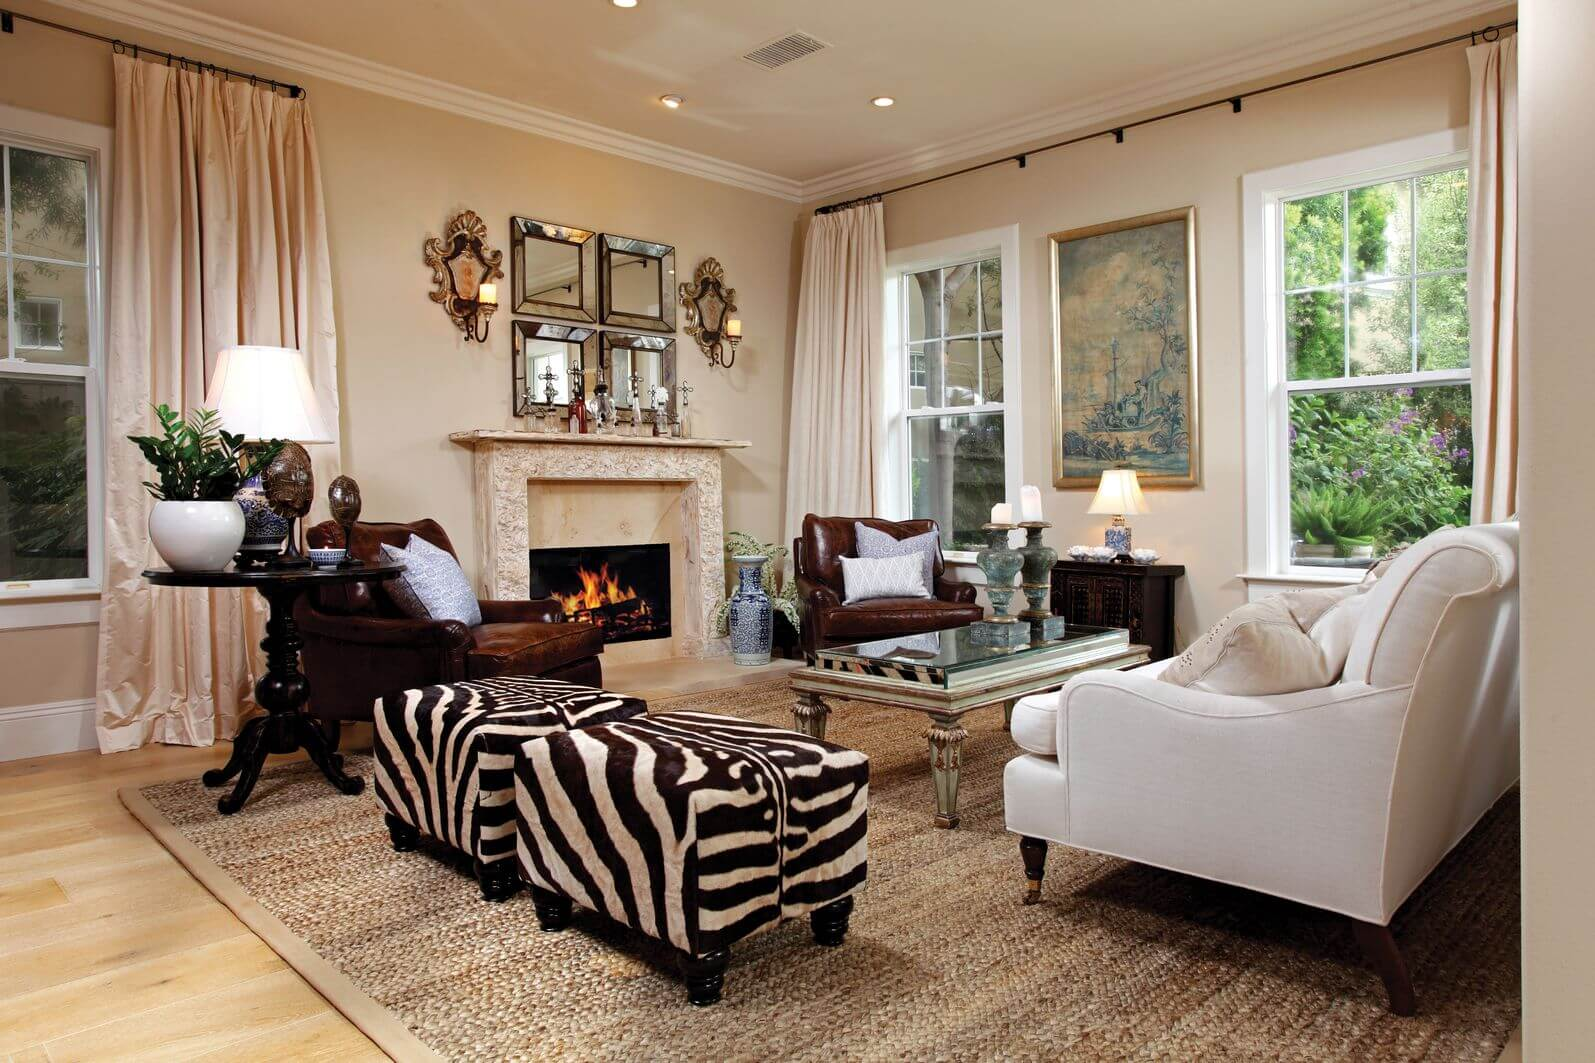 Exceptionnel Larger Formal Living Room Incorporating Zebra Print With Two Identical Zebra  Print Ottomans Off To The